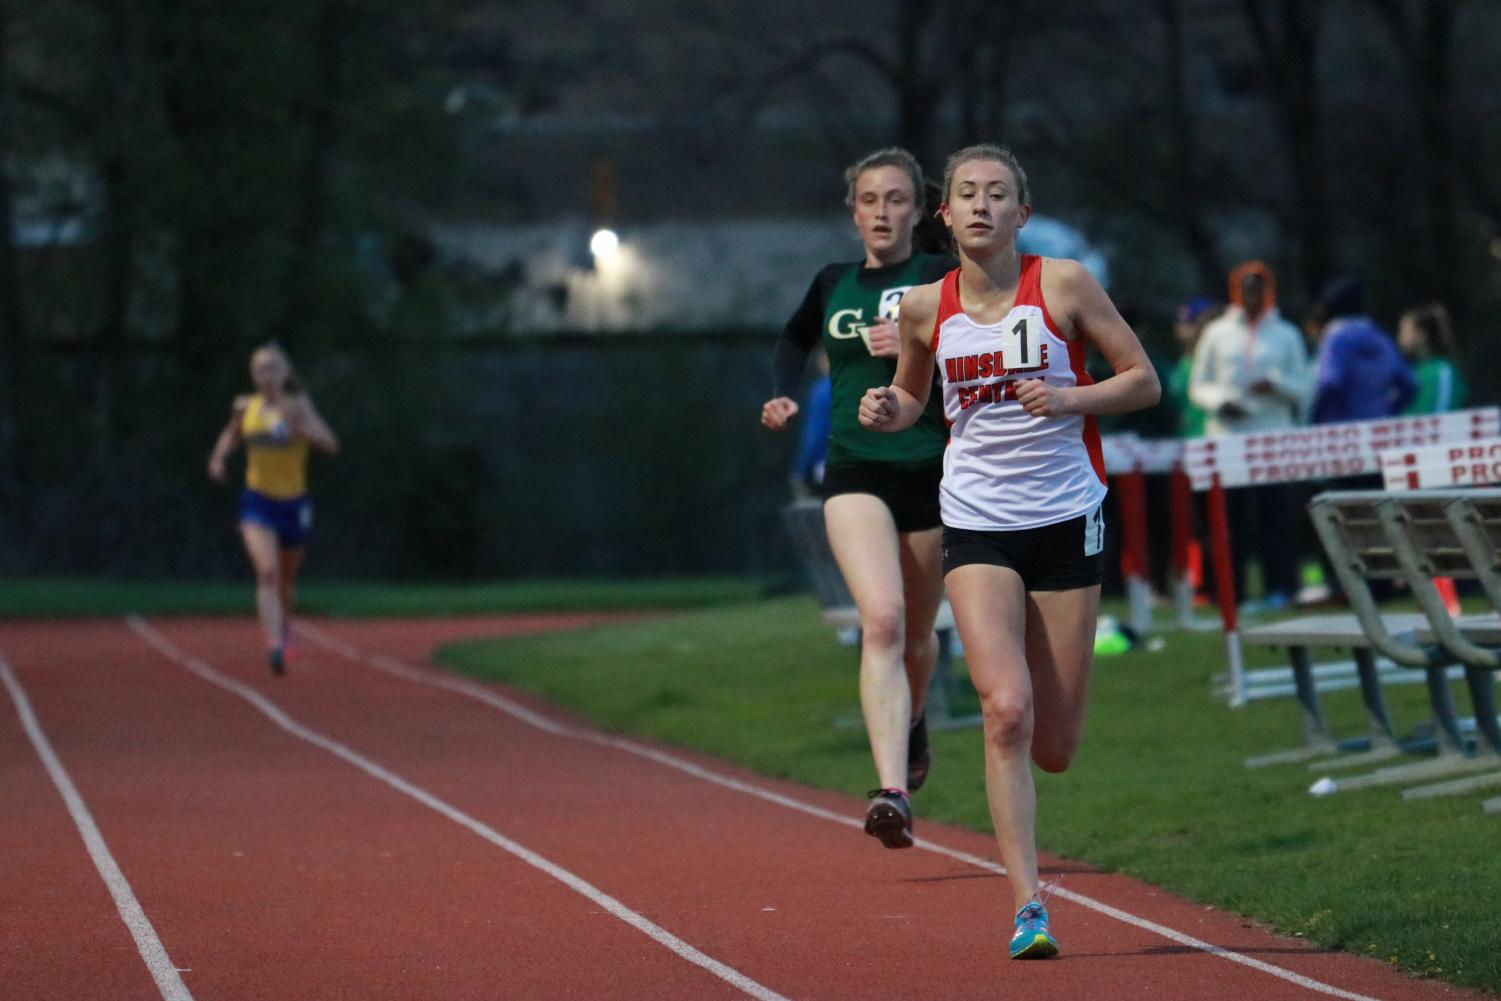 Mckenna Revord, junior, leads the 3200 meter run throughout the entire race, in front of former all state runners Katie Hohe of Glenbard West, and Sarah Barcelona of Lyons Township.